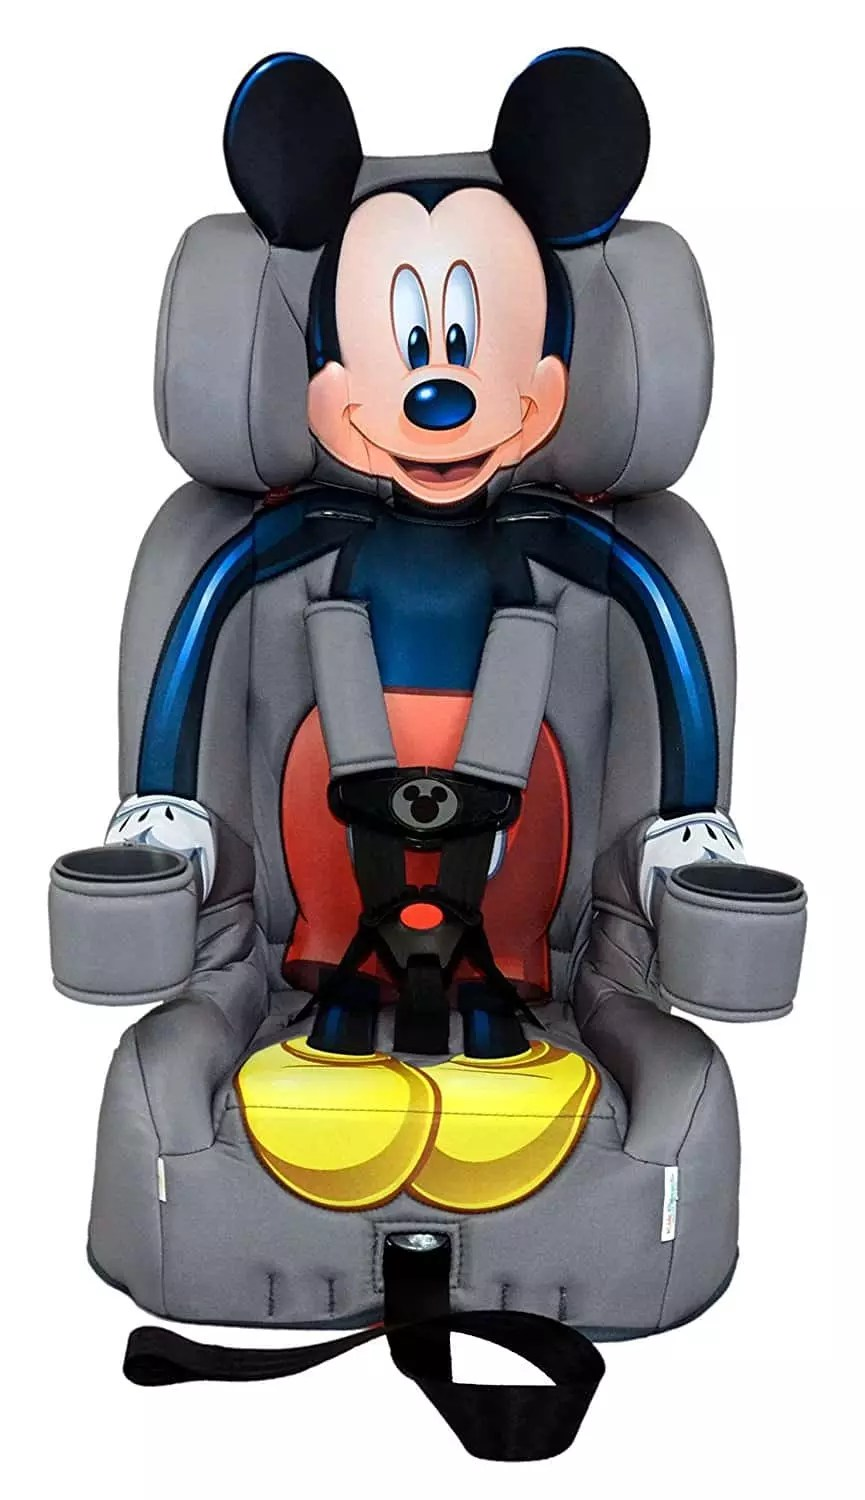 Booster Seat review KIDSEmbrace Character Toddler Seat